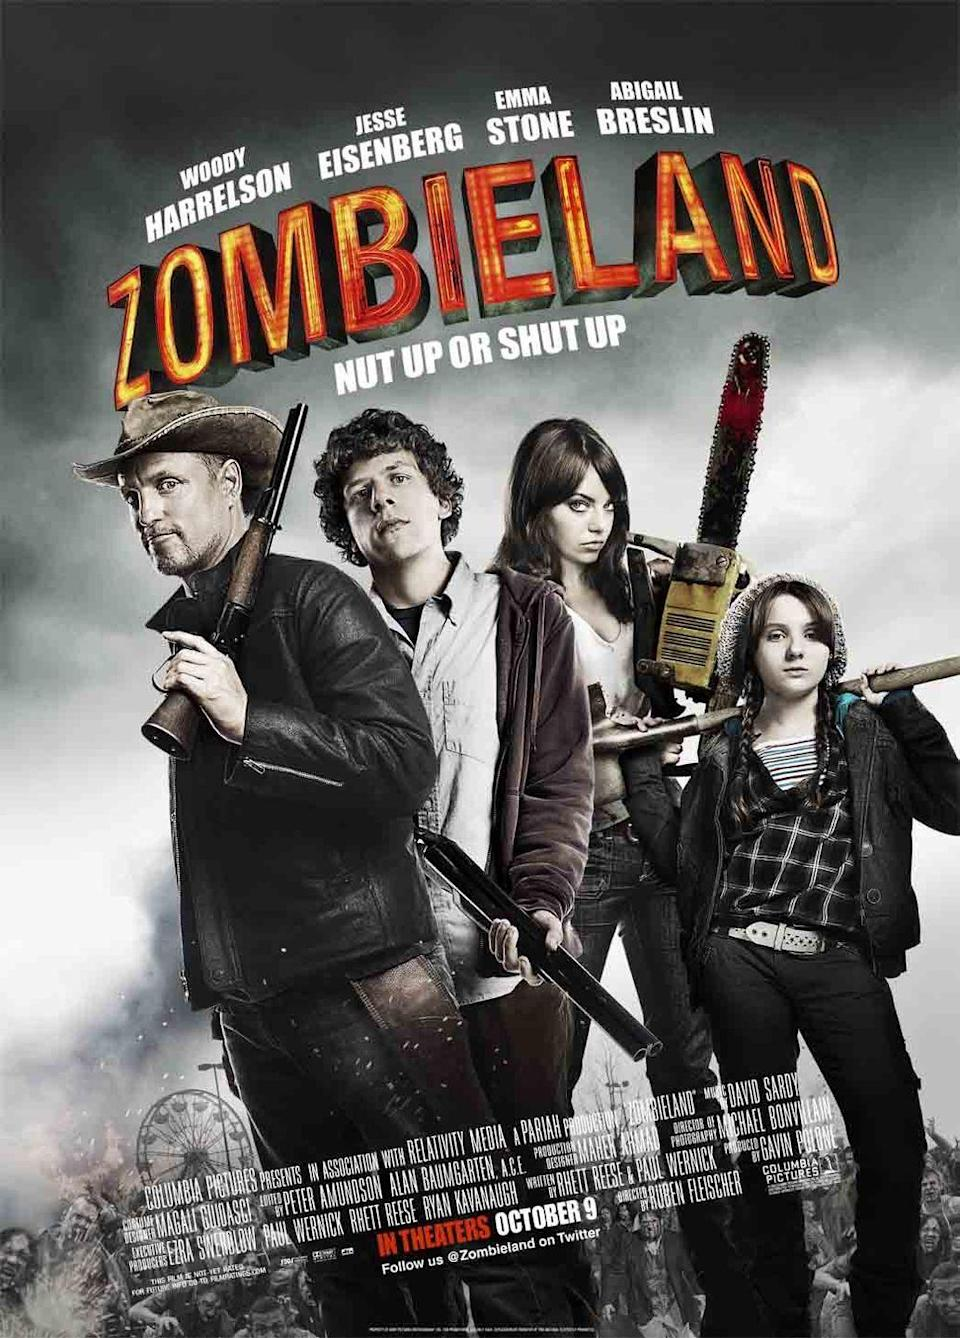 "<p><em>Zombieland</em> follows a nerdy college student (Jesse Eisenberg) who finds himself on a road trip with three other survivors during a zombie apocalypse. The result? A lot of hilarious gags and plenty of zombie gore — not to mention one of the most iconic <a href=""https://www.goodhousekeeping.com/life/entertainment/g31119057/best-celebrity-cameos/"" rel=""nofollow noopener"" target=""_blank"" data-ylk=""slk:celebrity movie cameos"" class=""link rapid-noclick-resp"">celebrity movie cameos</a> of all time.</p><p><a class=""link rapid-noclick-resp"" href=""https://www.amazon.com/Zombieland-Woody-Harrelson/dp/B0030B624E?tag=syn-yahoo-20&ascsubtag=%5Bartid%7C10055.g.33546030%5Bsrc%7Cyahoo-us"" rel=""nofollow noopener"" target=""_blank"" data-ylk=""slk:WATCH ON AMAZON"">WATCH ON AMAZON</a></p>"